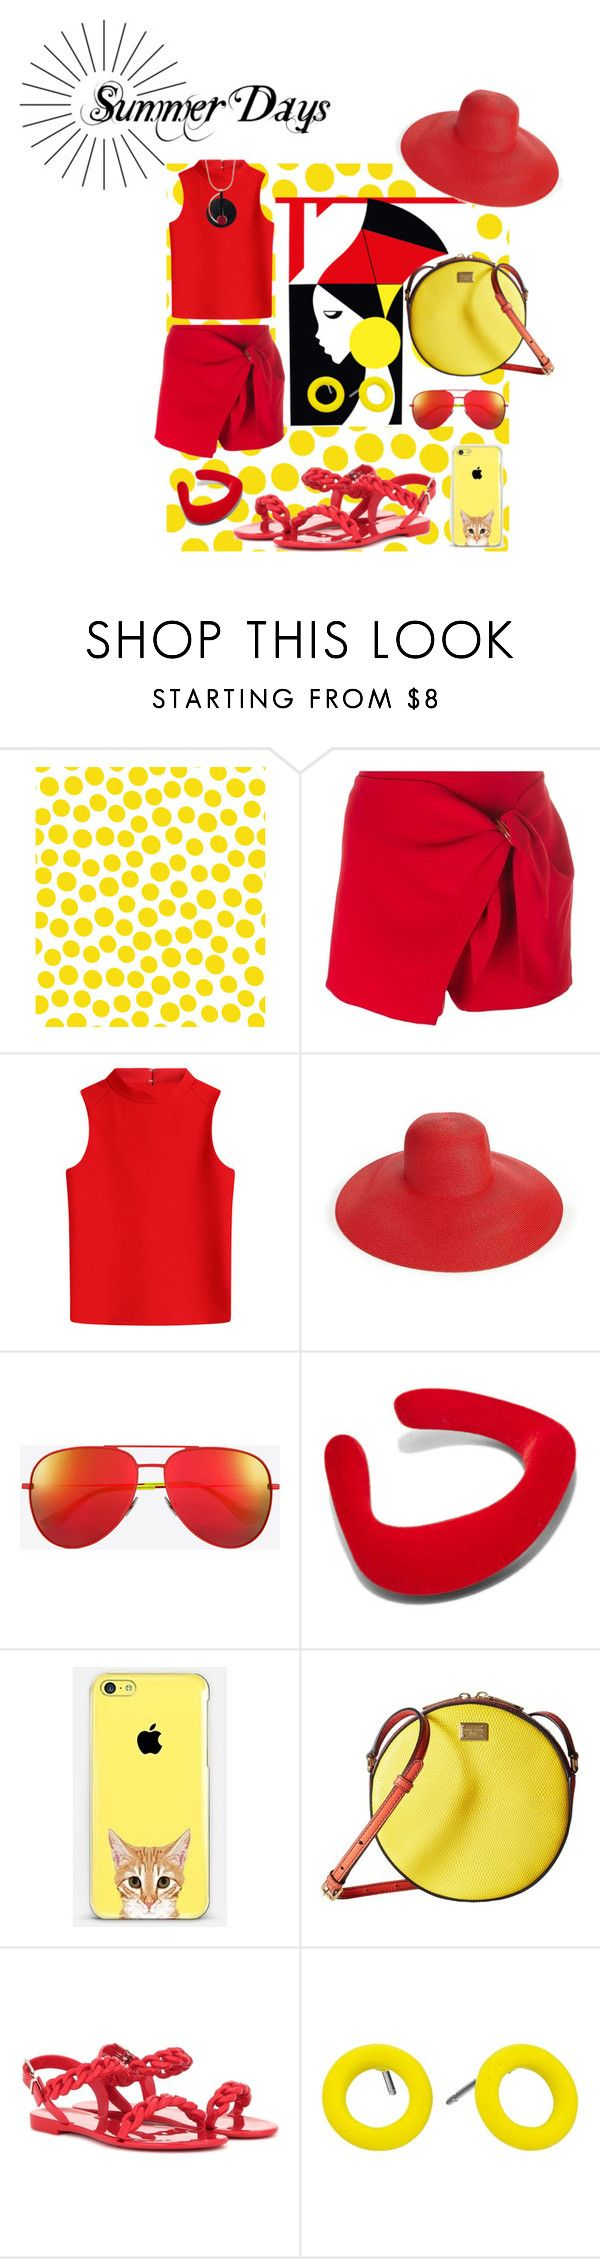 """""""Summer Days"""" by enchanticals ❤ liked on Polyvore featuring Jennifer Paganelli, Ermanno Scervino, Courrèges, Eric Javits, Yves Saint Laurent, Ribeyron, Casetify, Dolce&Gabbana, Givenchy and Marc by Marc Jacobs"""